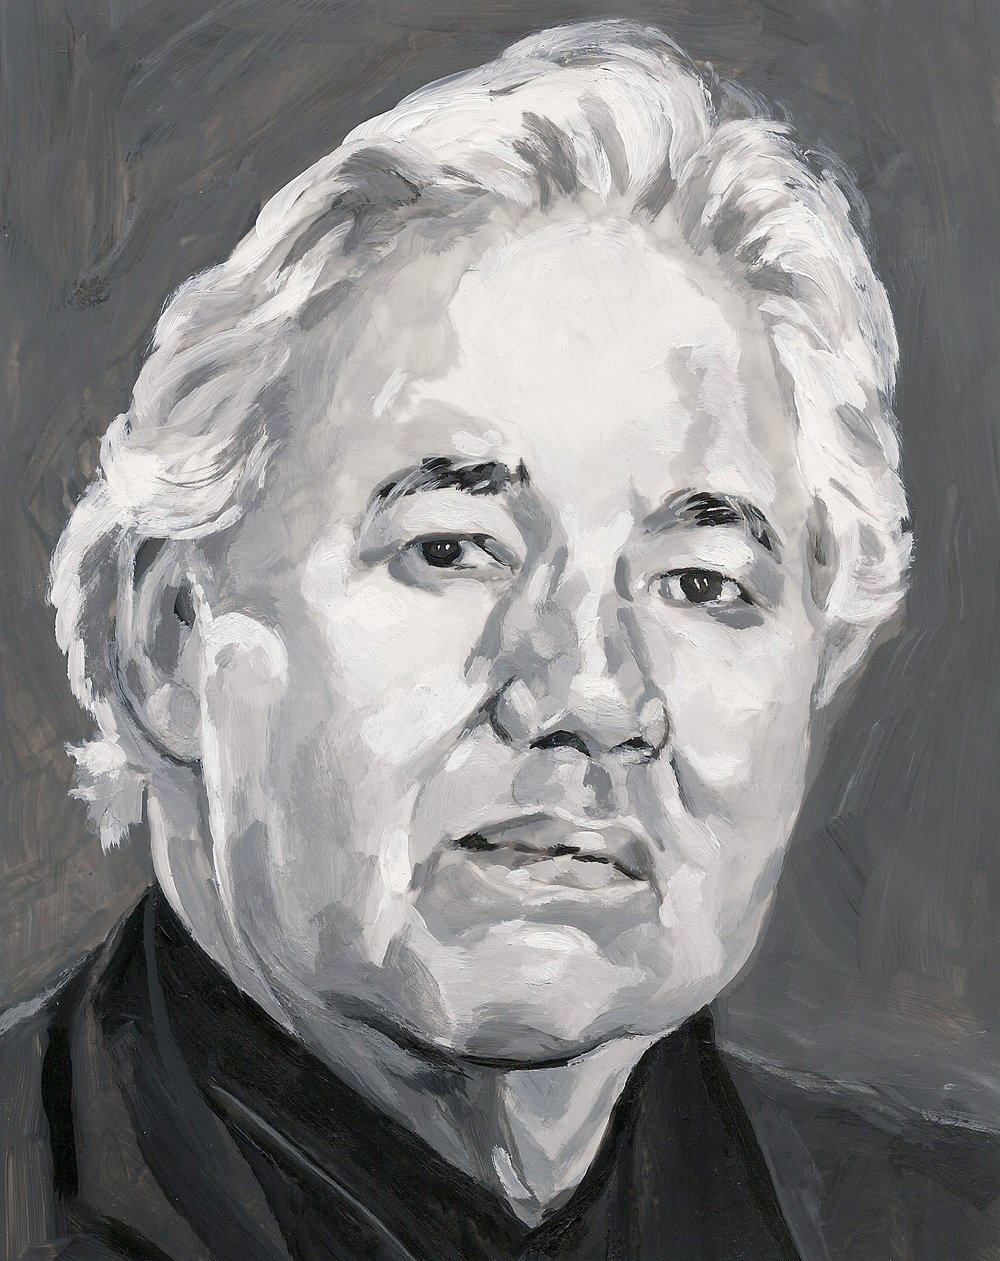 (Detail) 48 Portraits: Murray Sinclair, Acrylic on Mylar on Wood Panel, 2016.